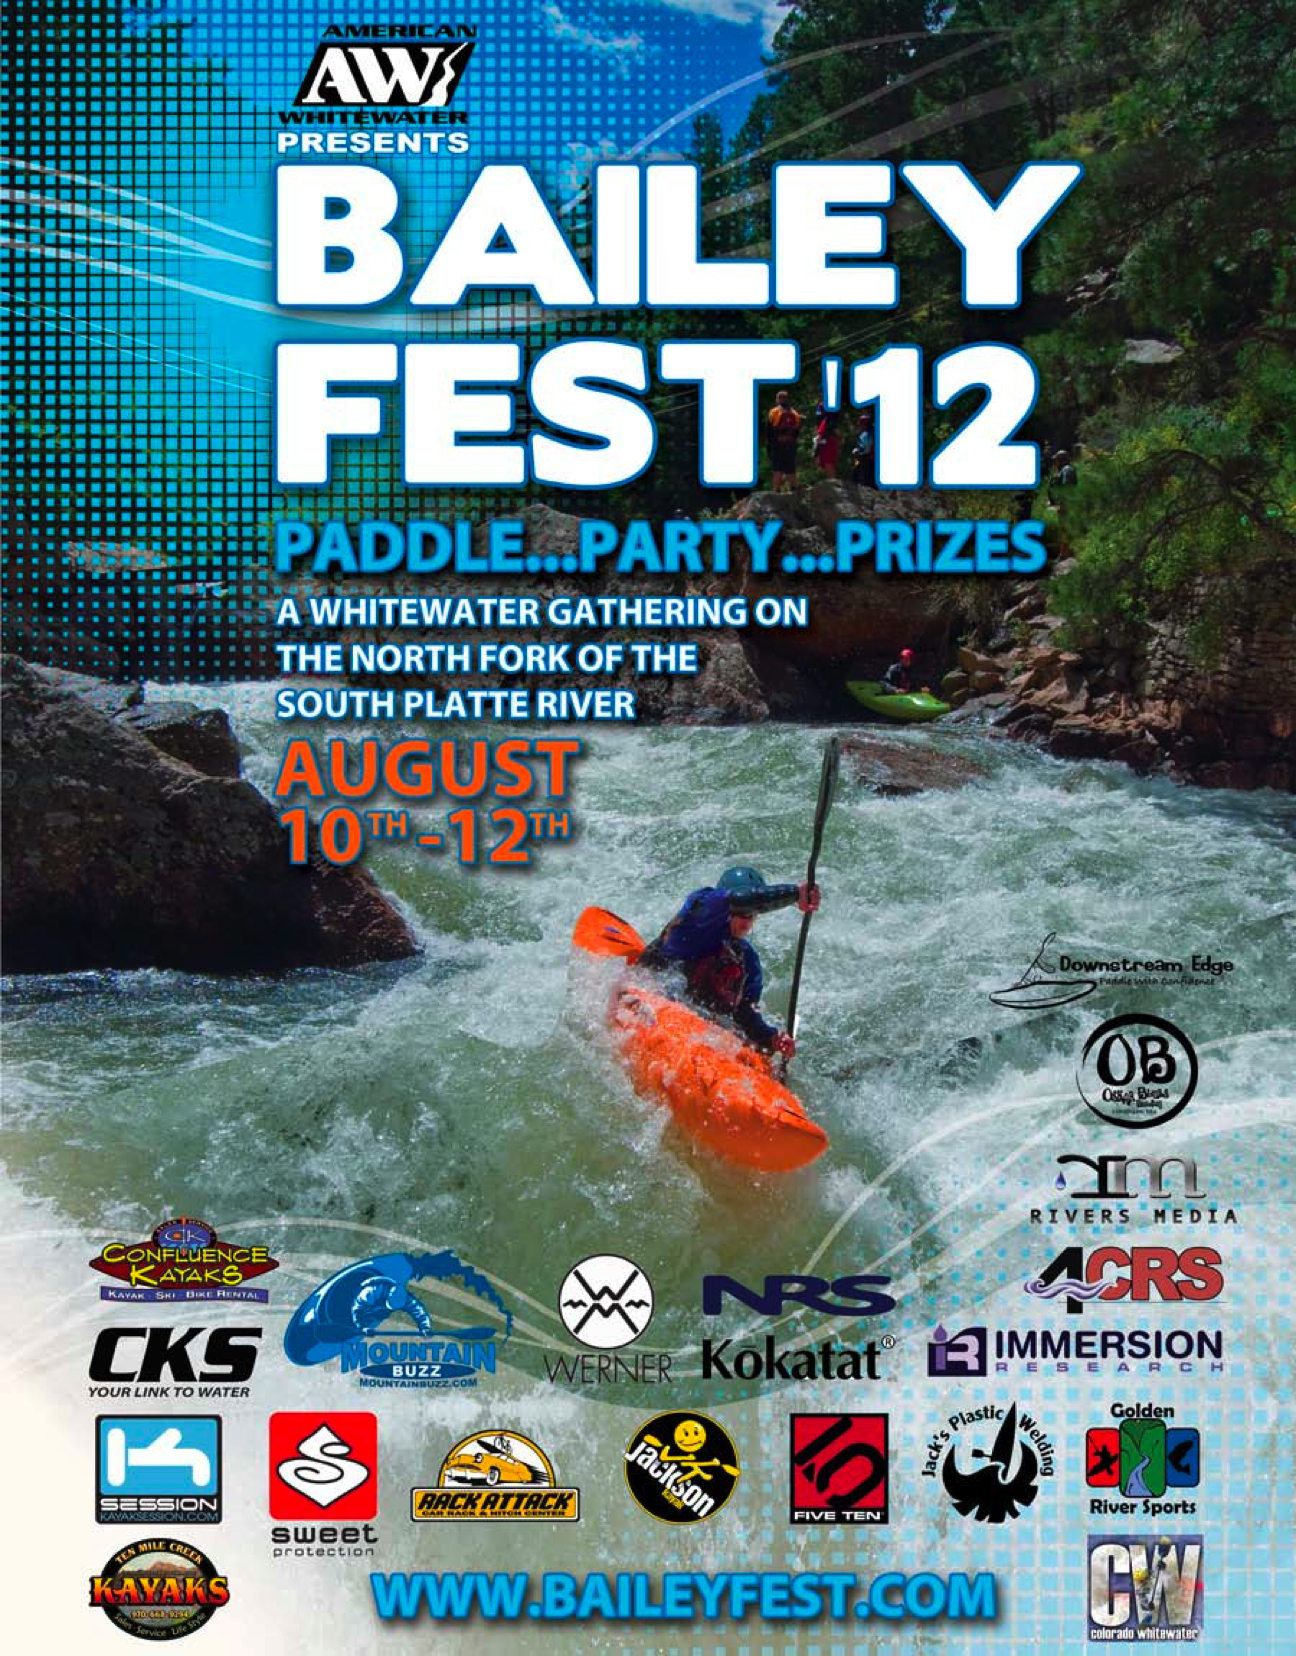 Click image for larger version  Name:BAILEYFEST12.jpg Views:186 Size:2.60 MB ID:4872